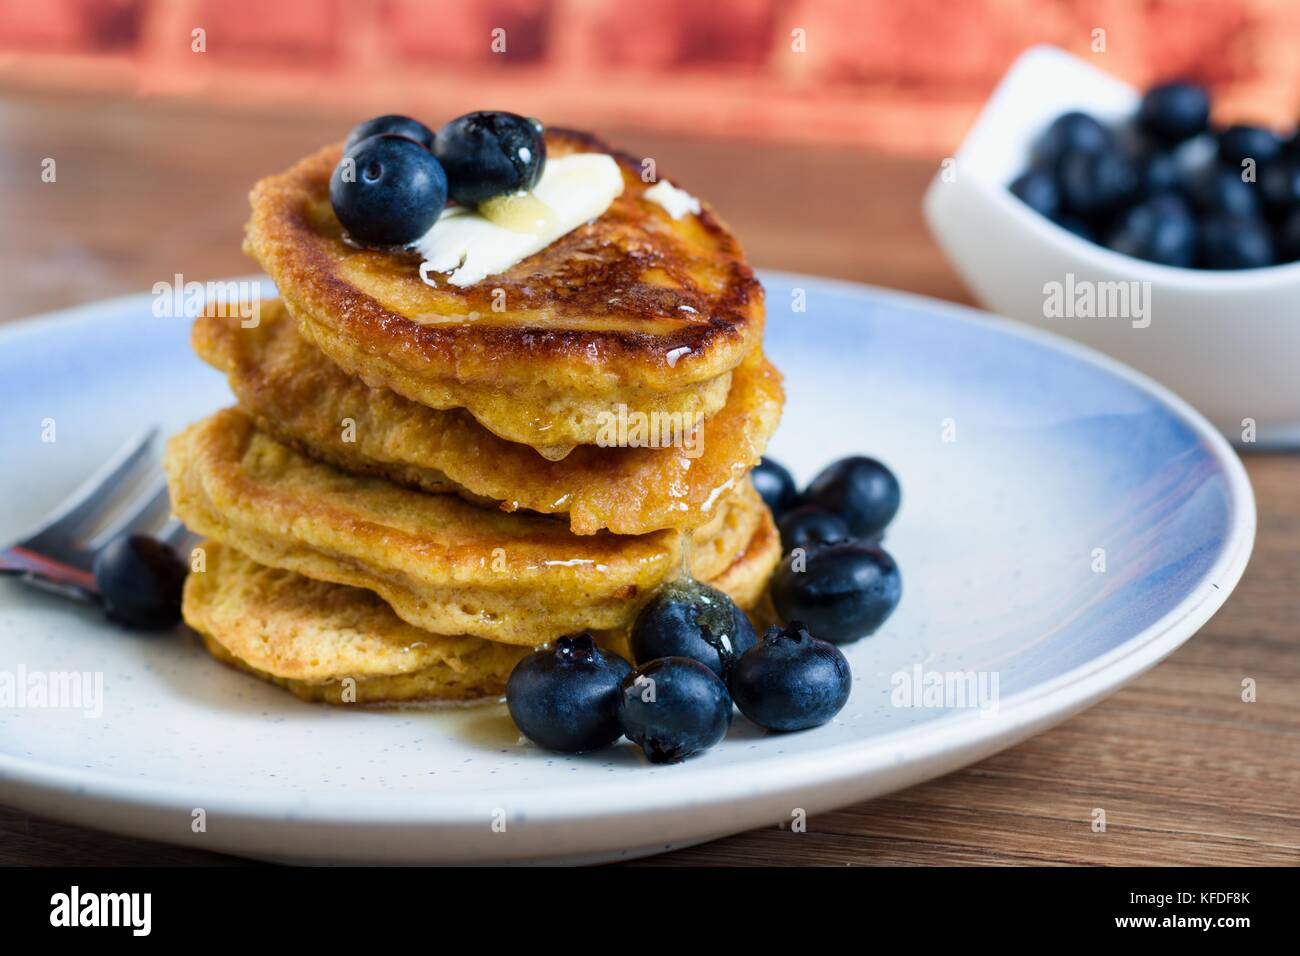 Stack of fresh hot pancakes with blueberries, butter and syrup in front of brick wall background - Stock Image